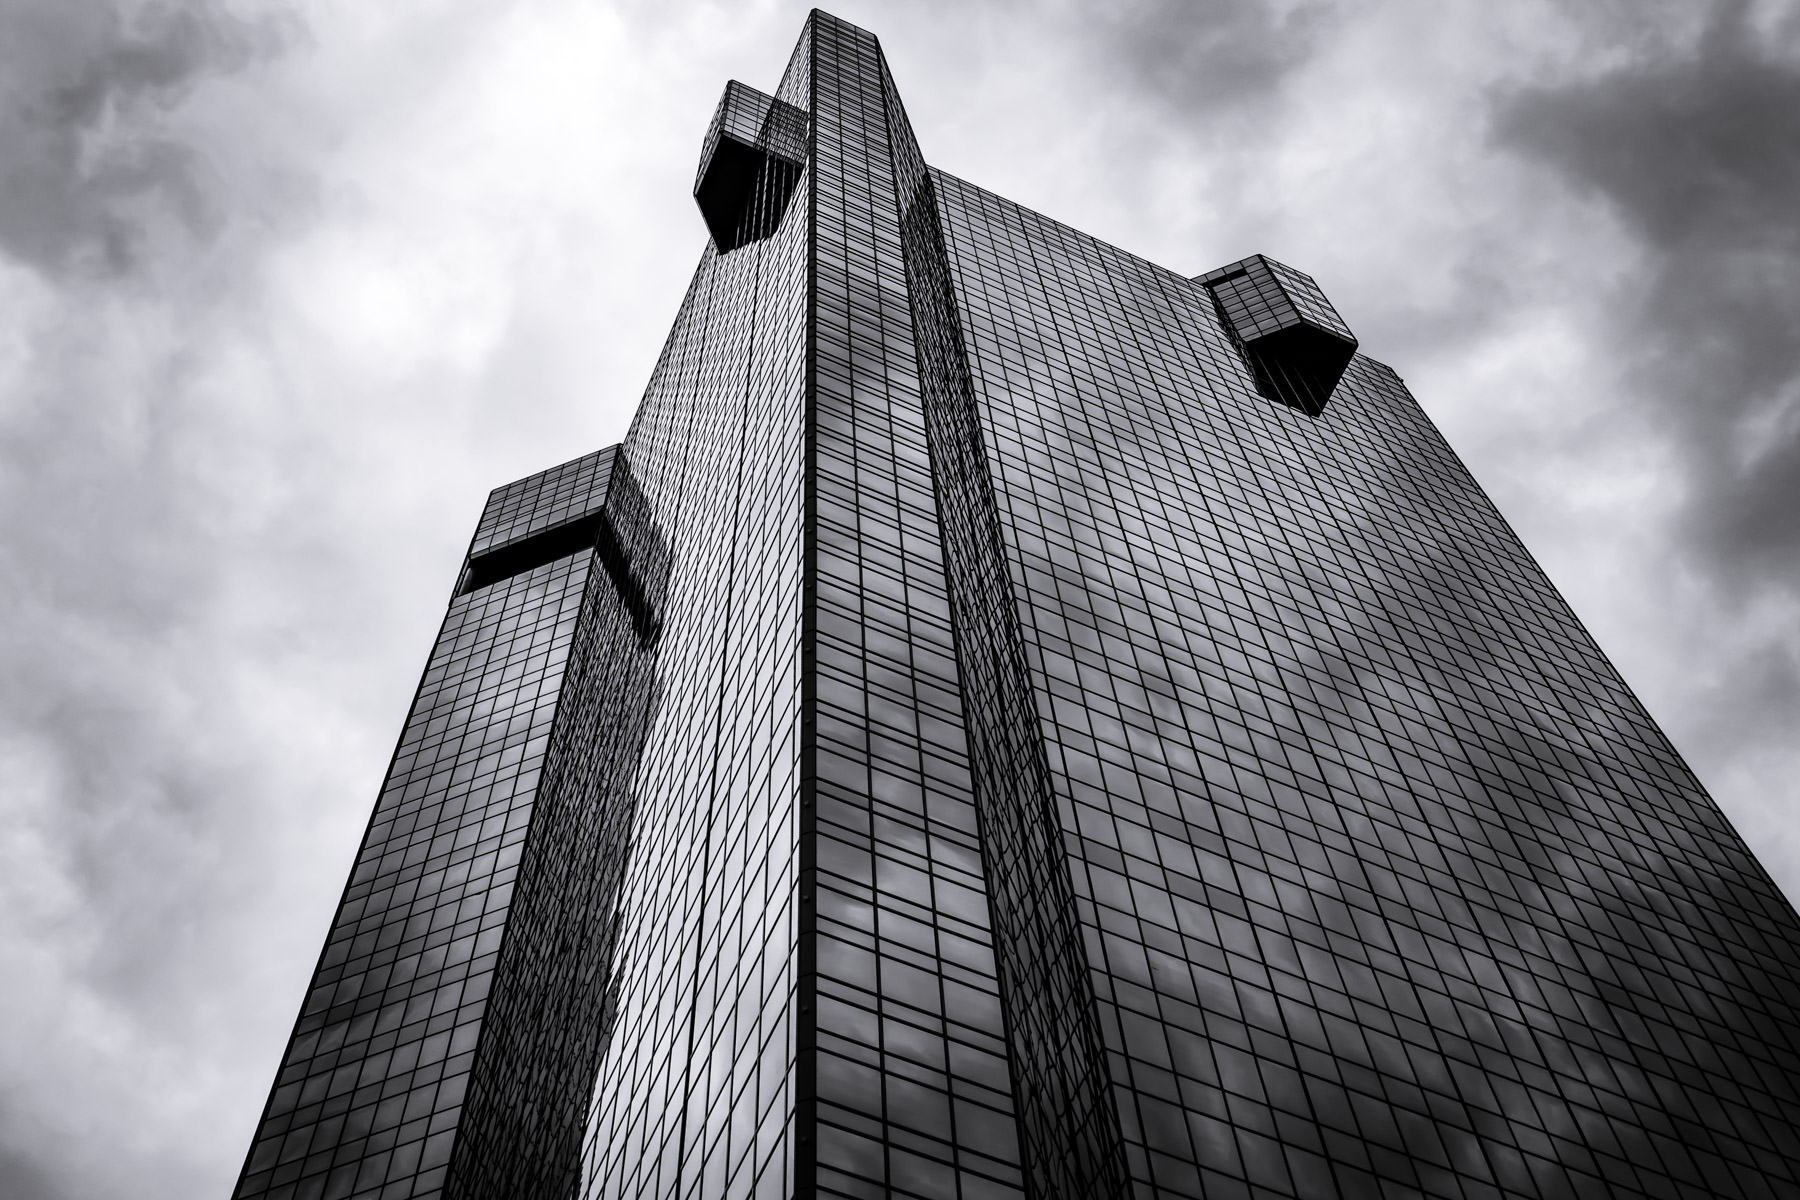 The D.R. Horton Tower rises into the sky in Downtown Fort Worth, Texas.